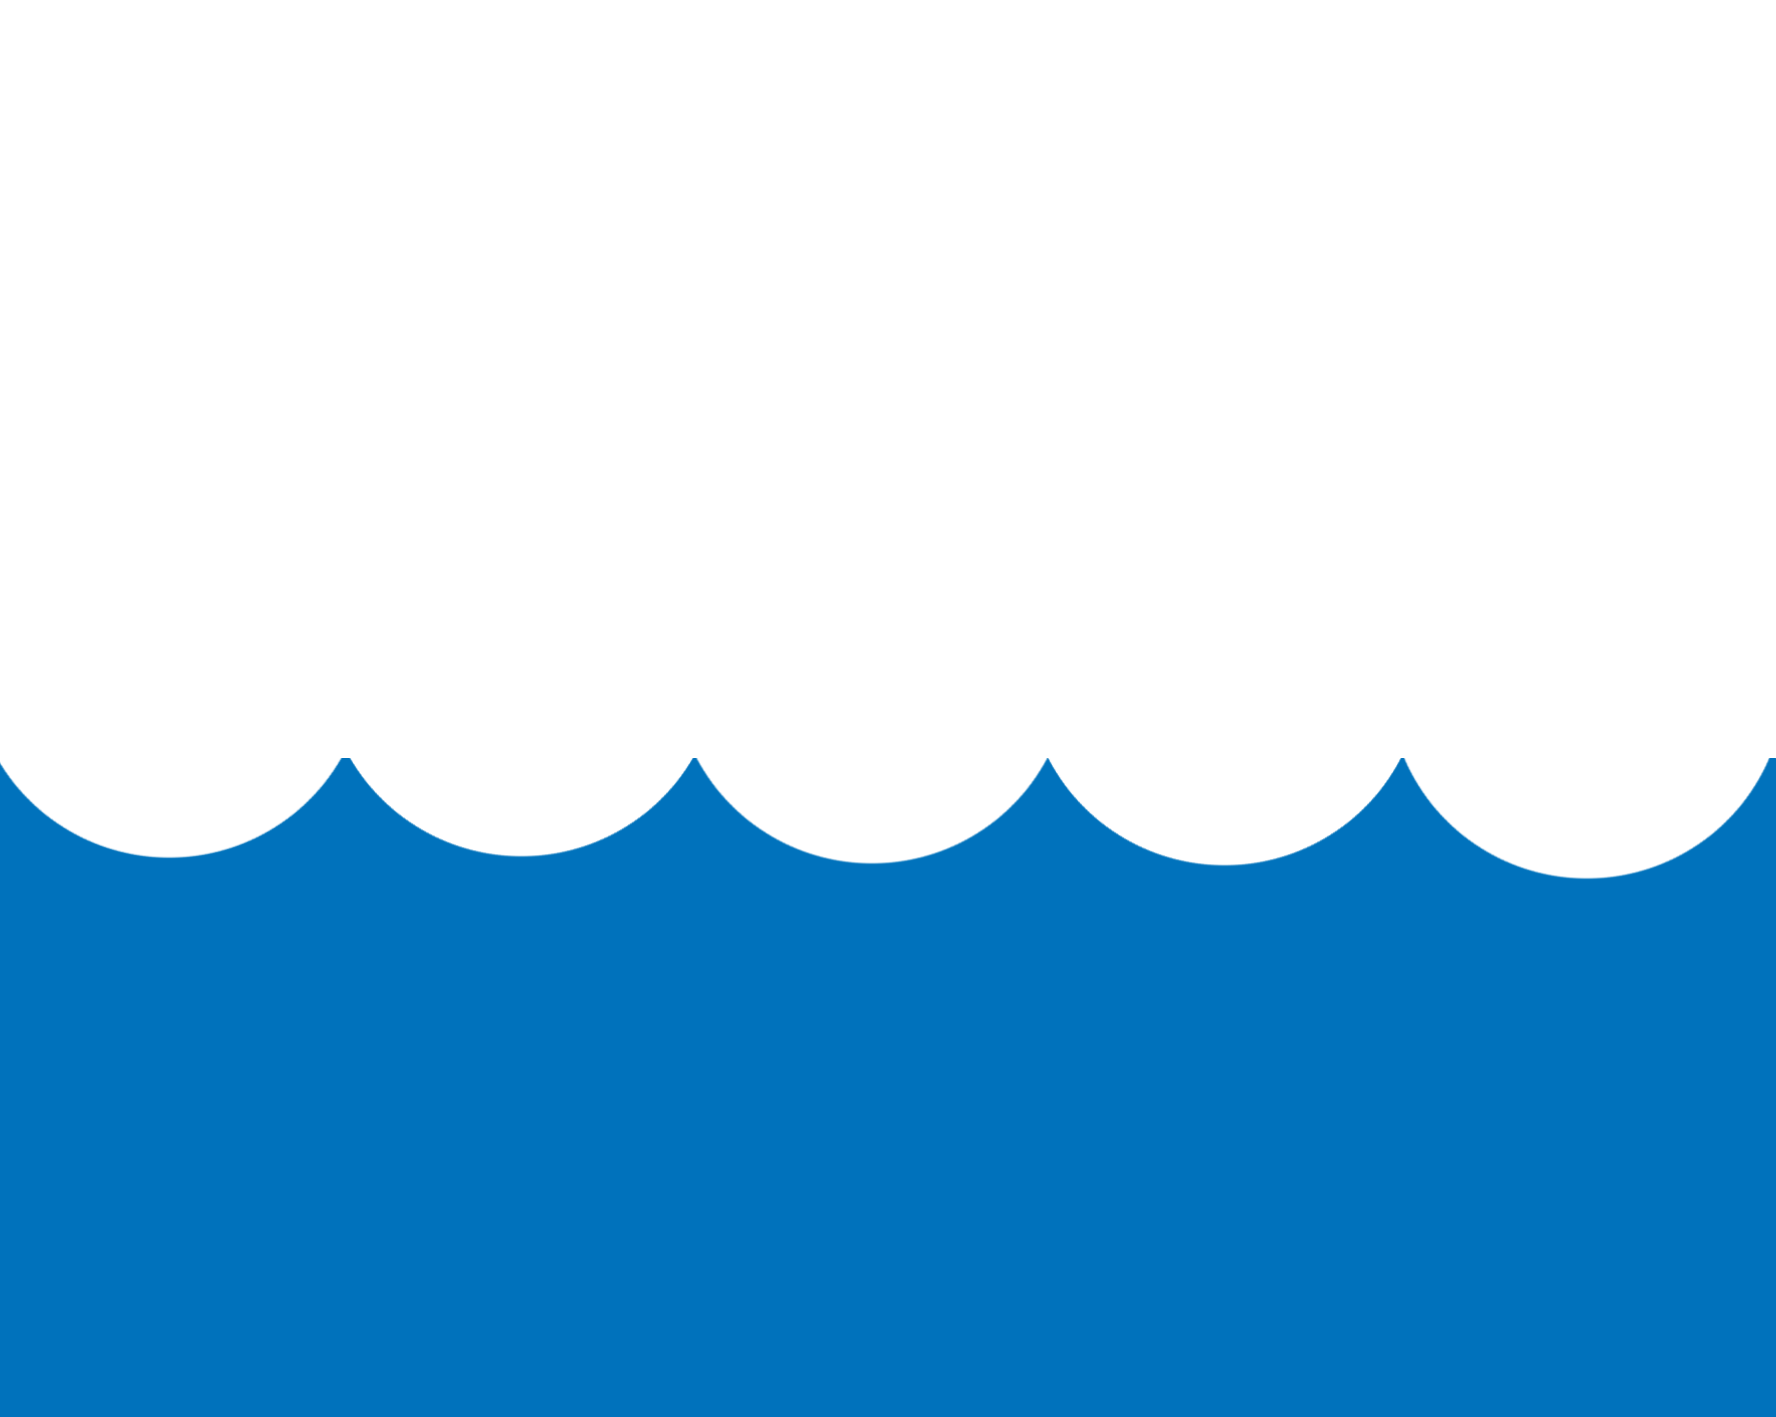 Water wave png. Flat free download